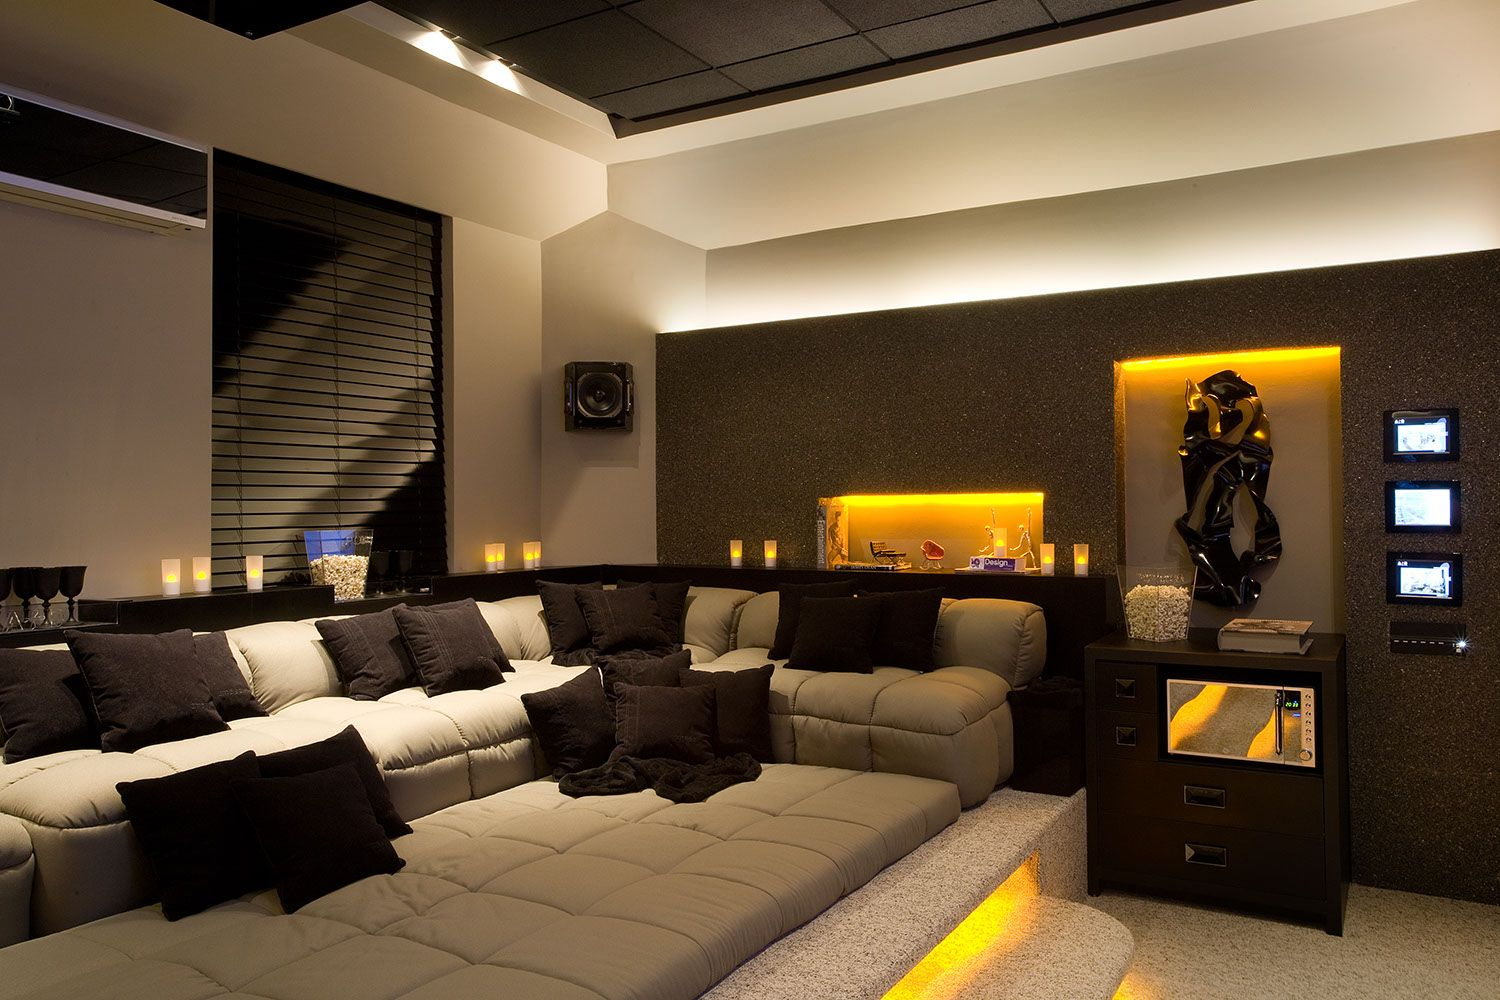 Wonderful Home Theater Decor      Picture 731   basement theater     Wonderful Home Theater Decor      Picture 731